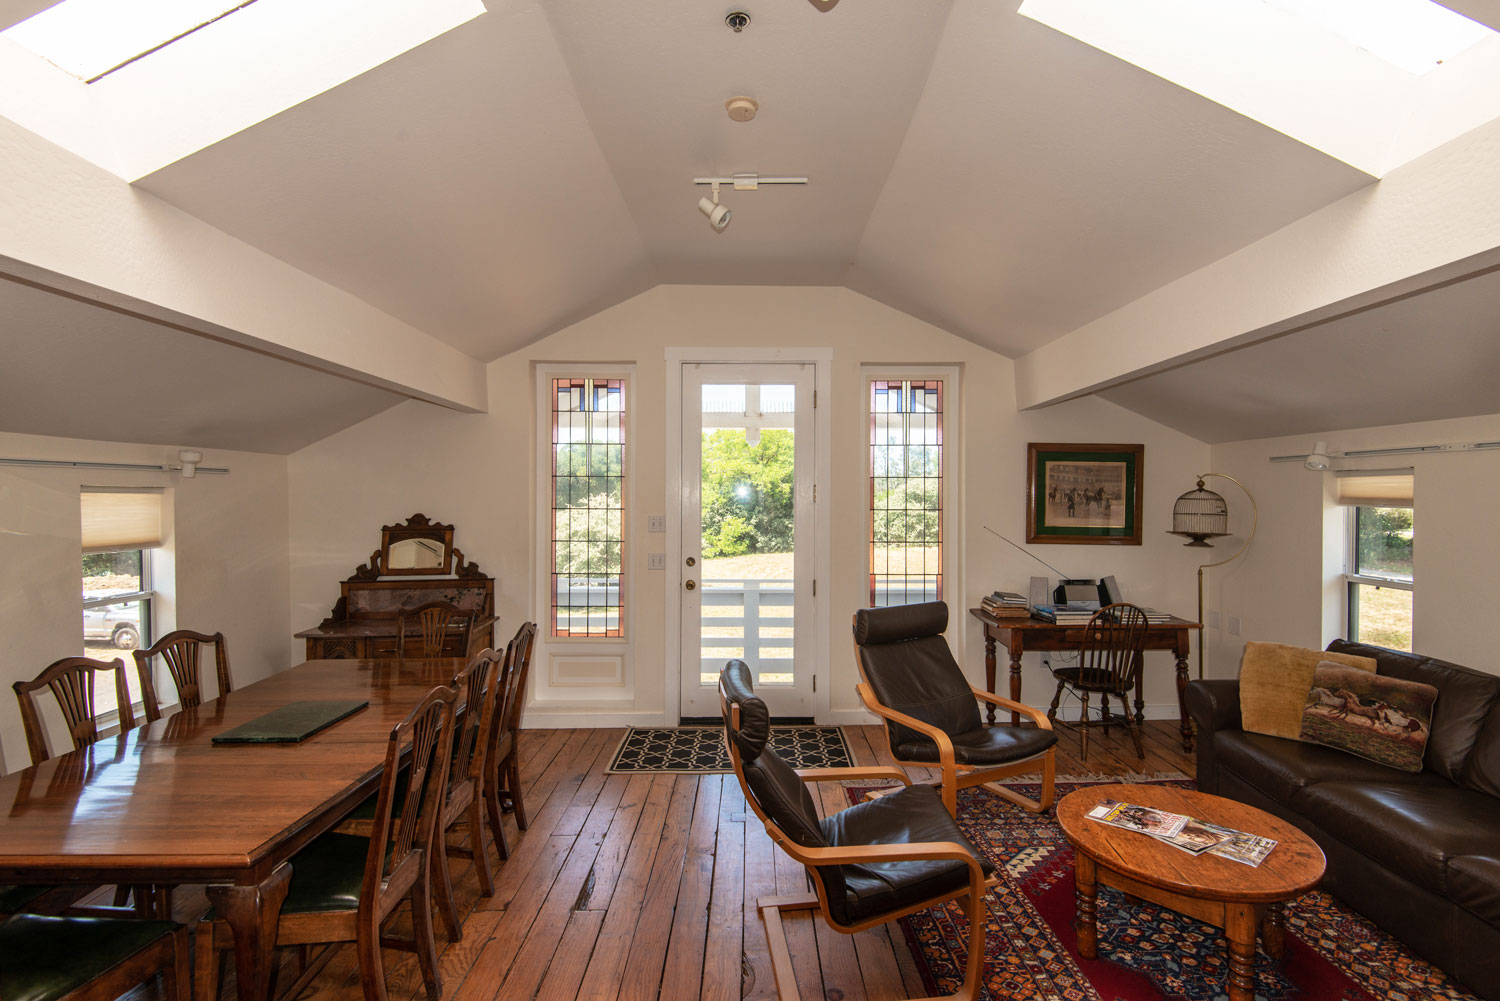 Point Reyes Lodging Vacation Rental for Groups with horses